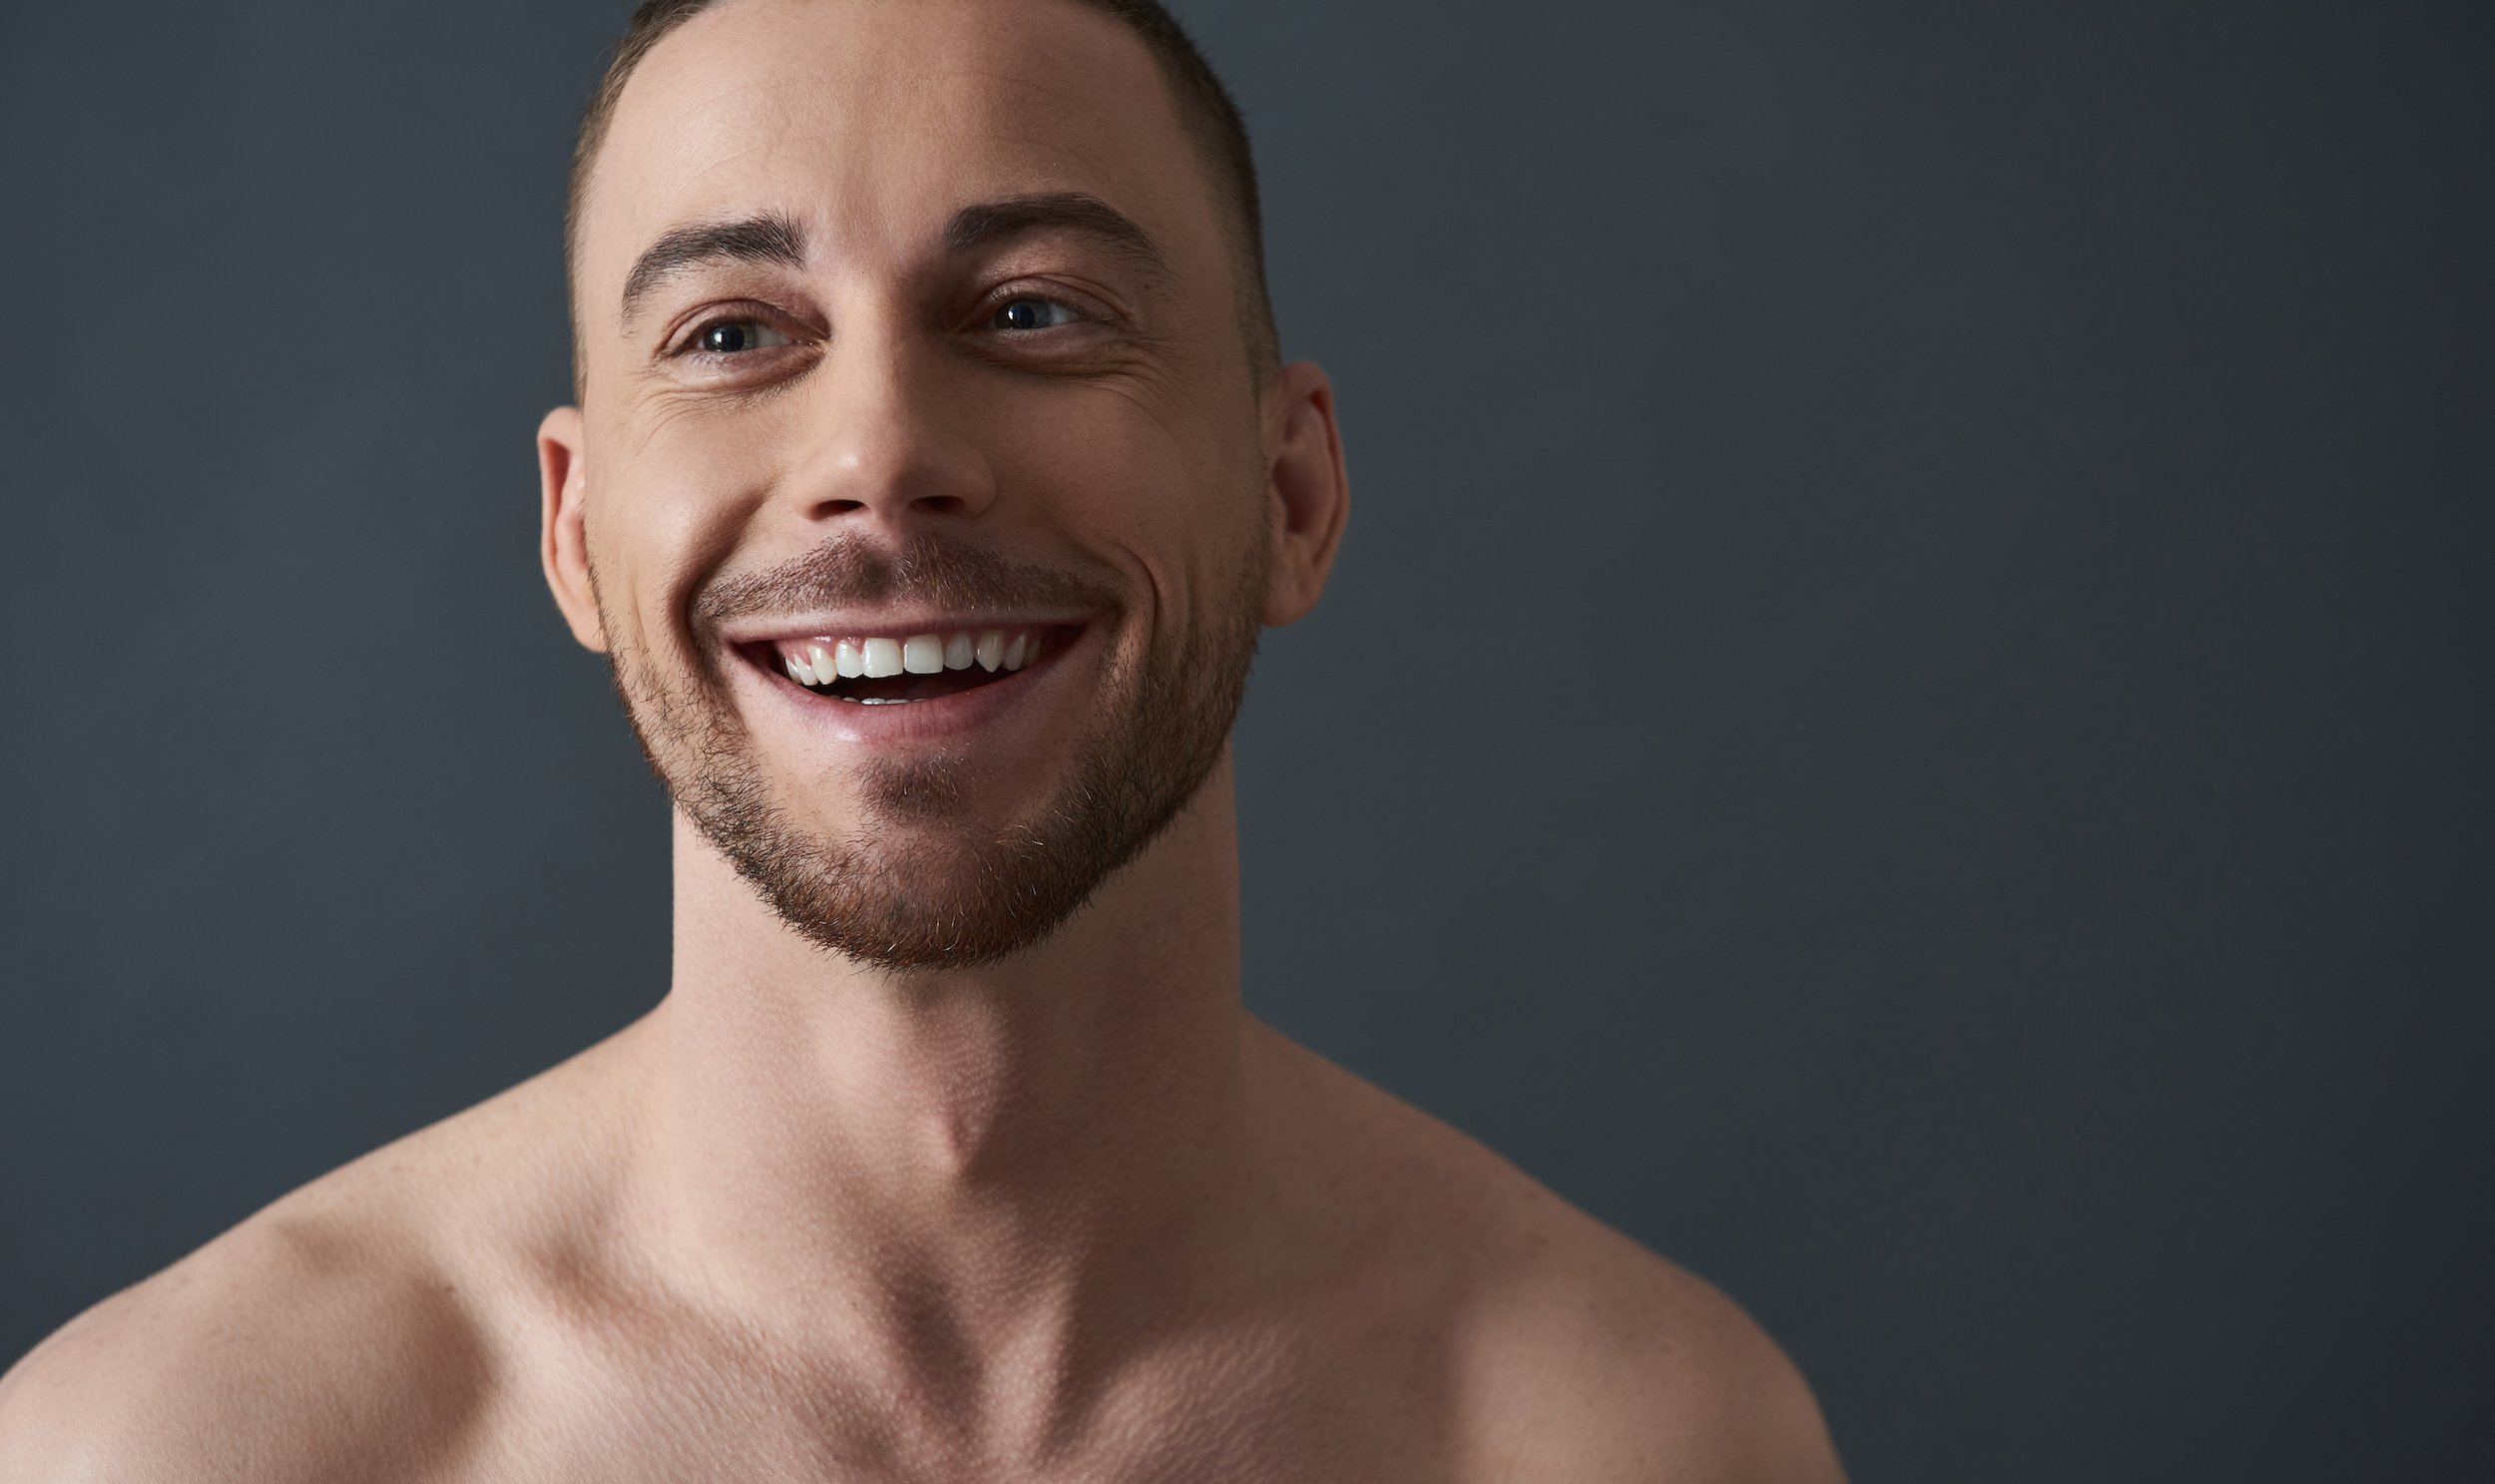 Close up of naked attractive Caucasian guy posing for camera. He is looking away and smiling in studio against gray background. Body care concept